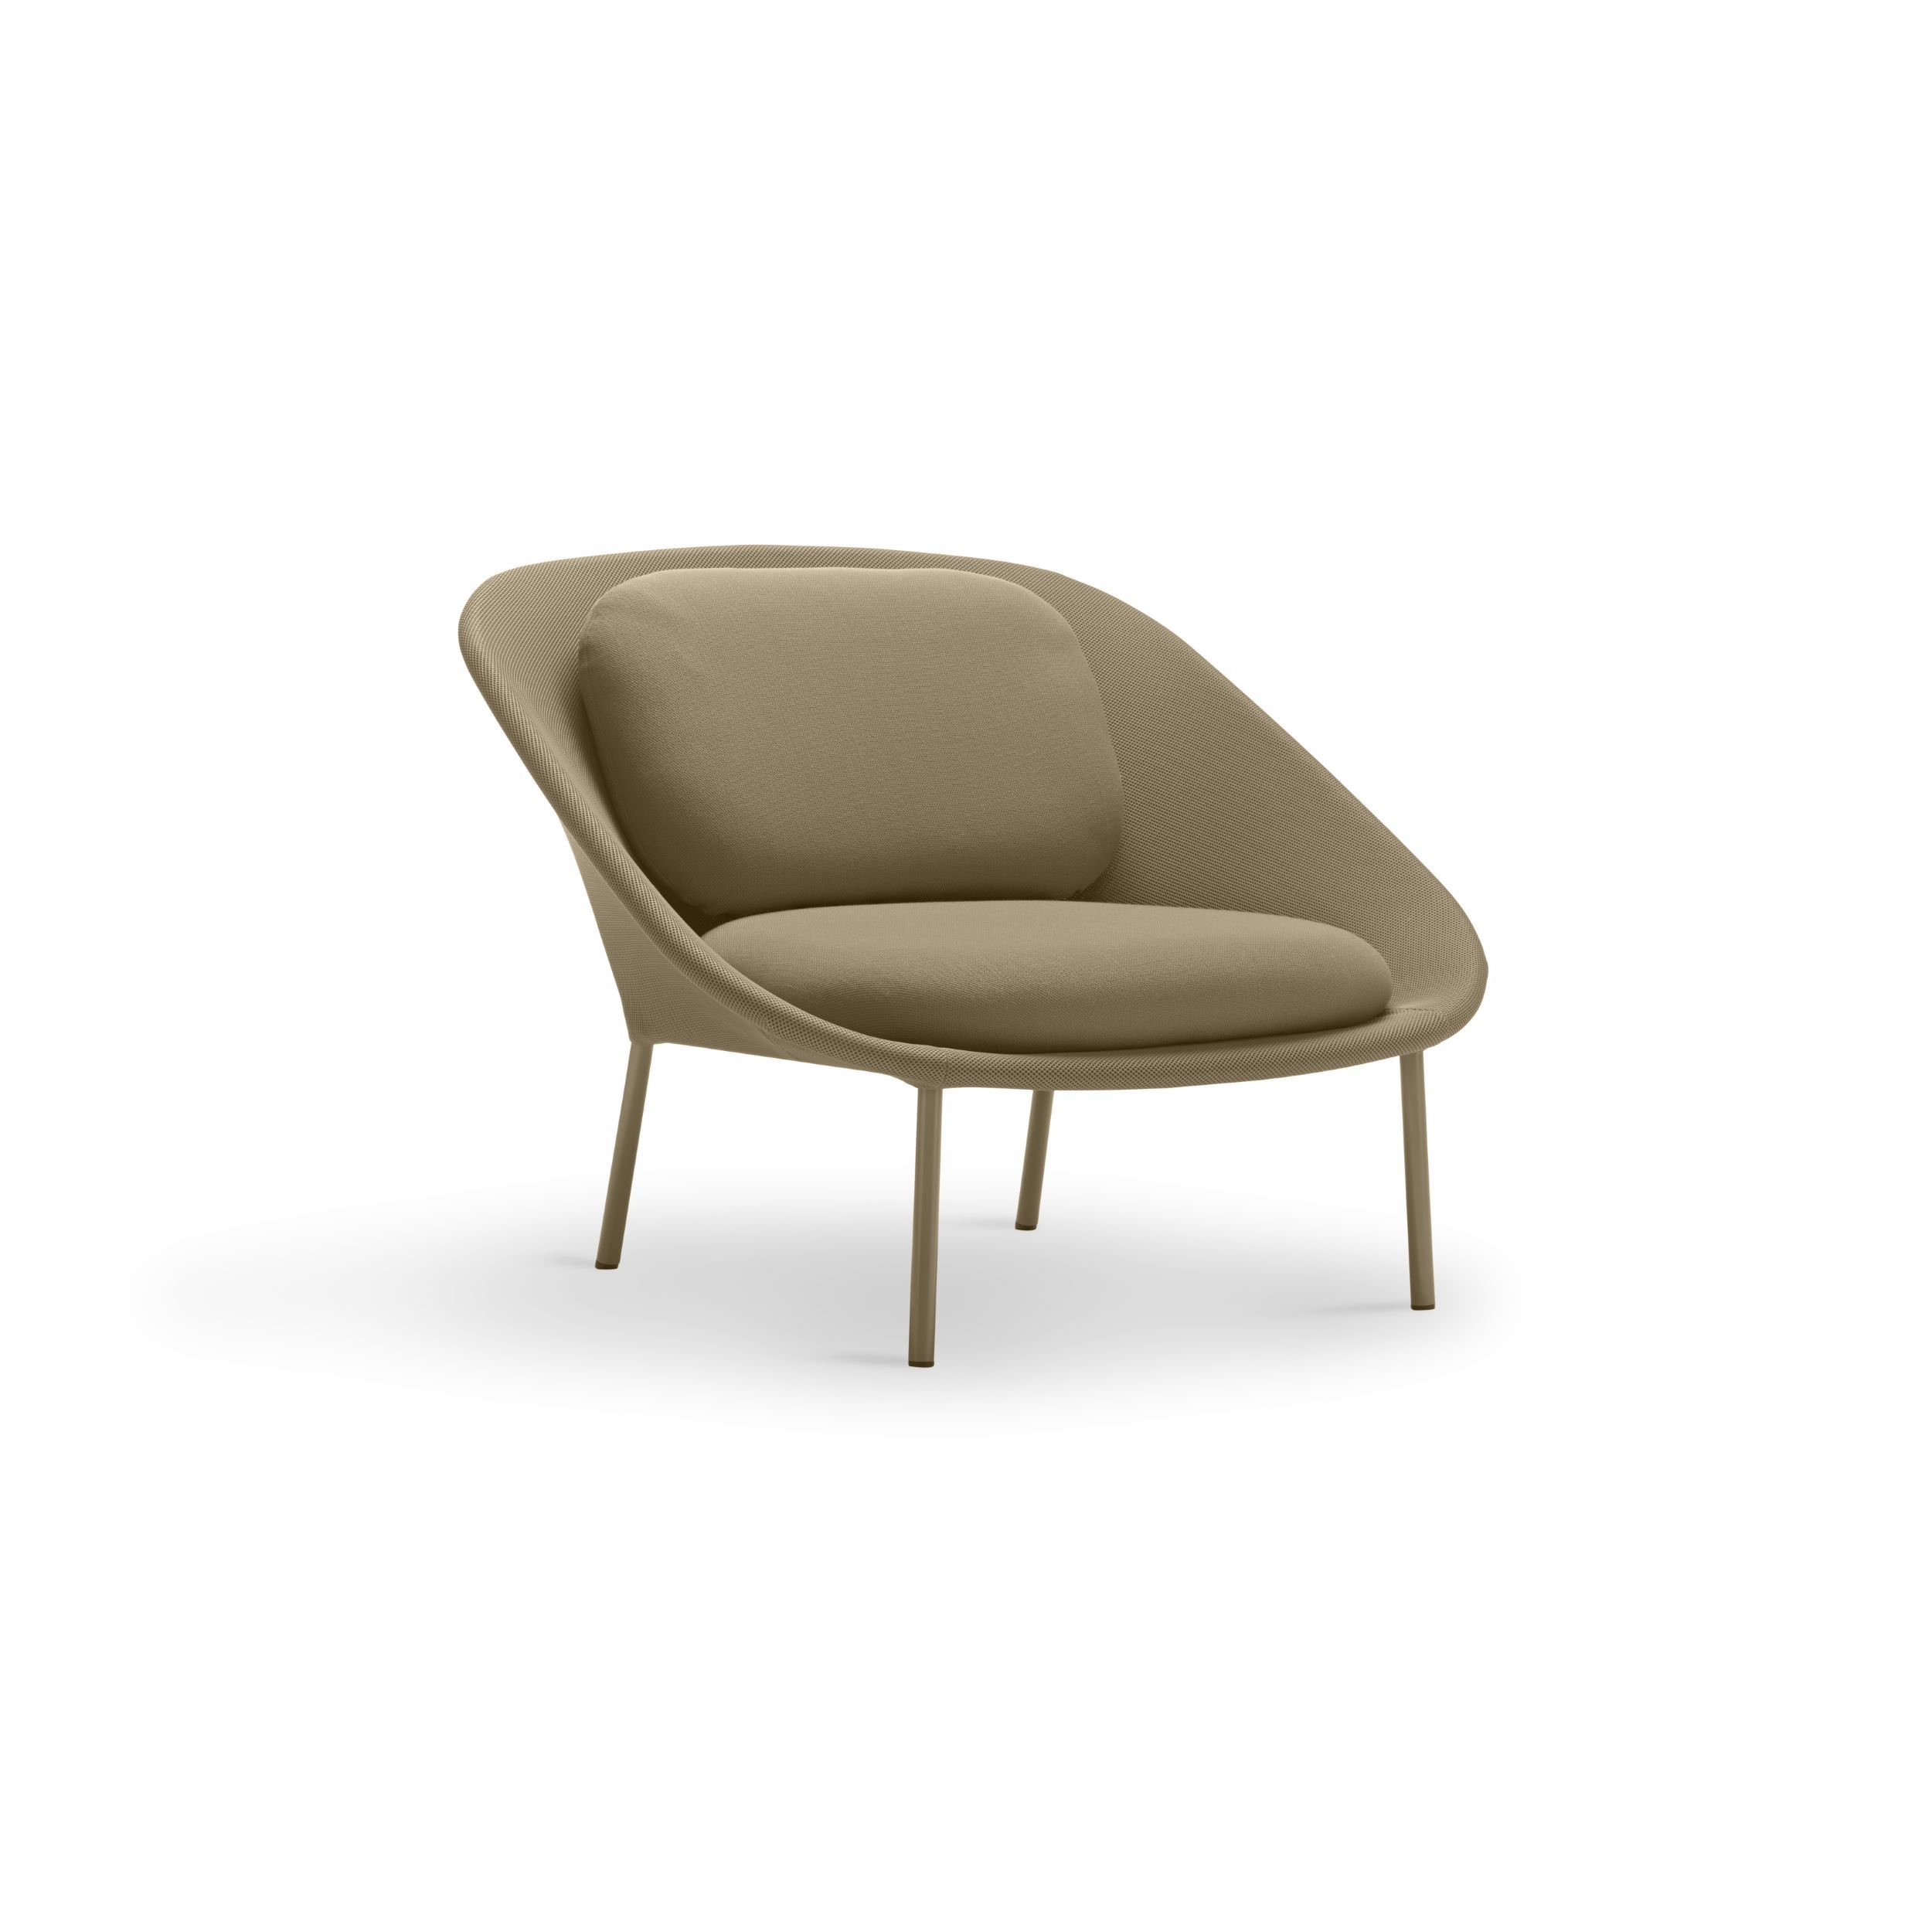 Stupendous Netframe Easy Chair Offecct Keep It Simple Timeless Inzonedesignstudio Interior Chair Design Inzonedesignstudiocom